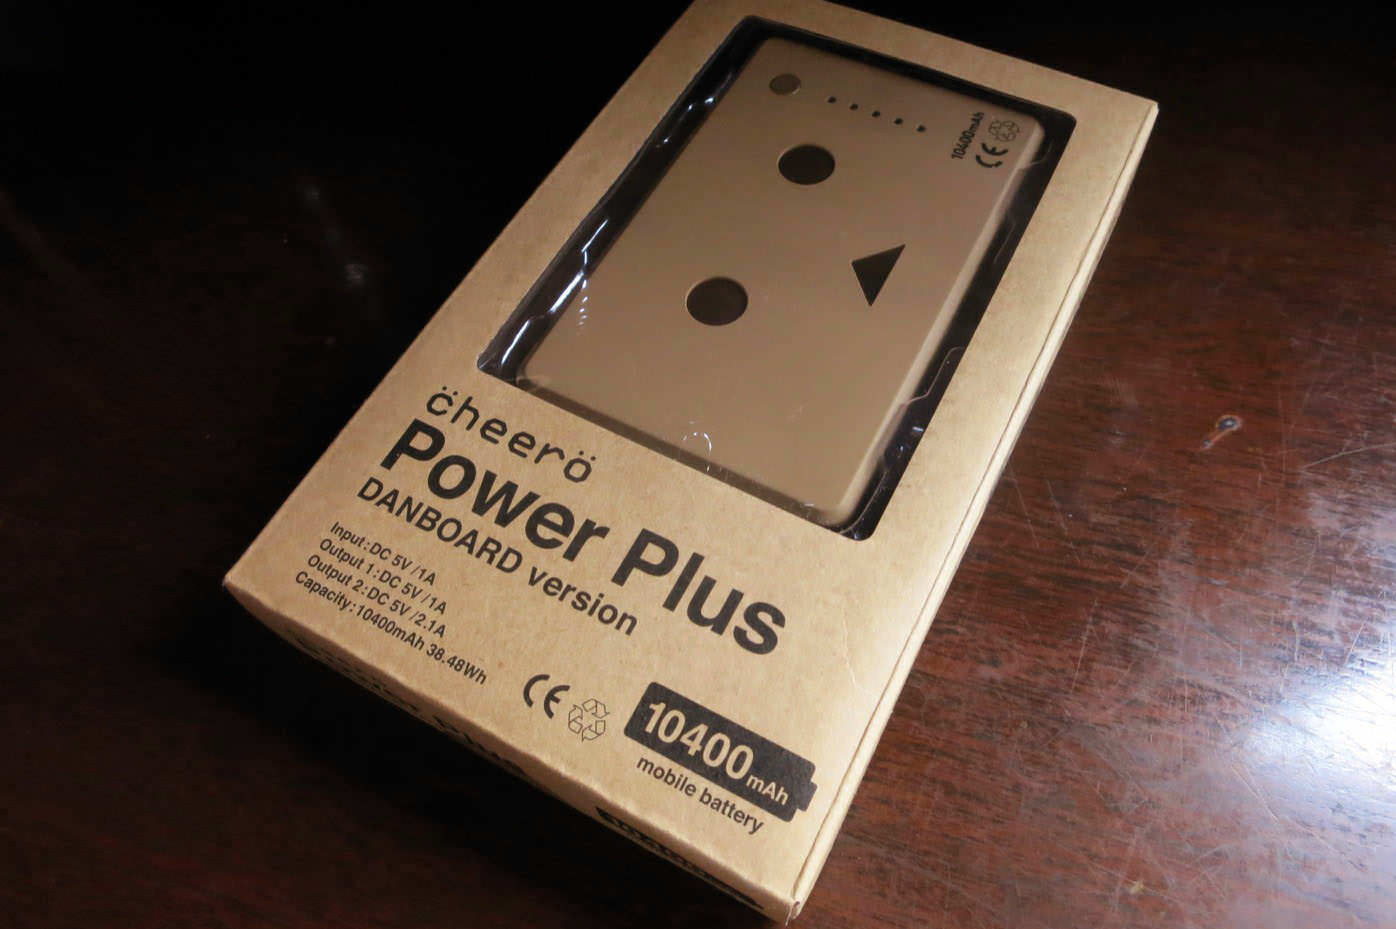 Cheero power plus danboard versionのケース